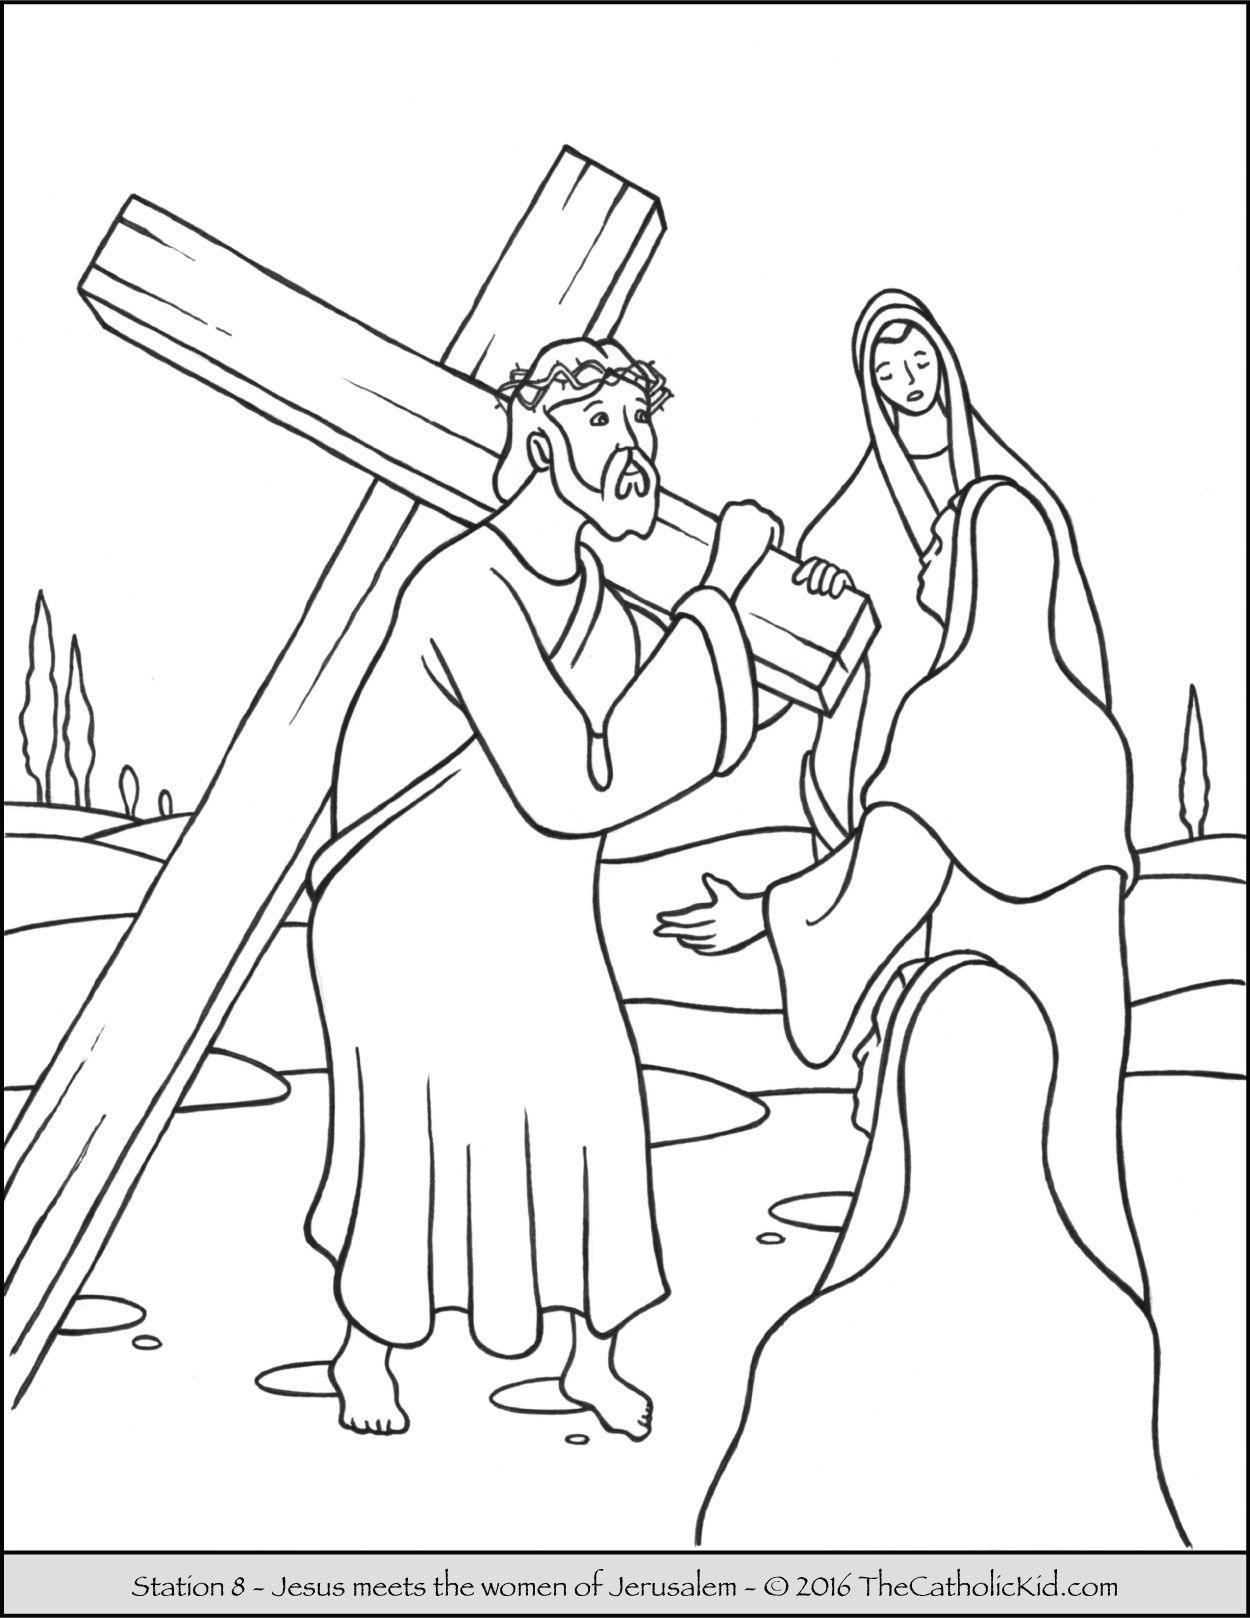 Stations of the Cross Coloring Pages 8 Jesus Meets the Women of